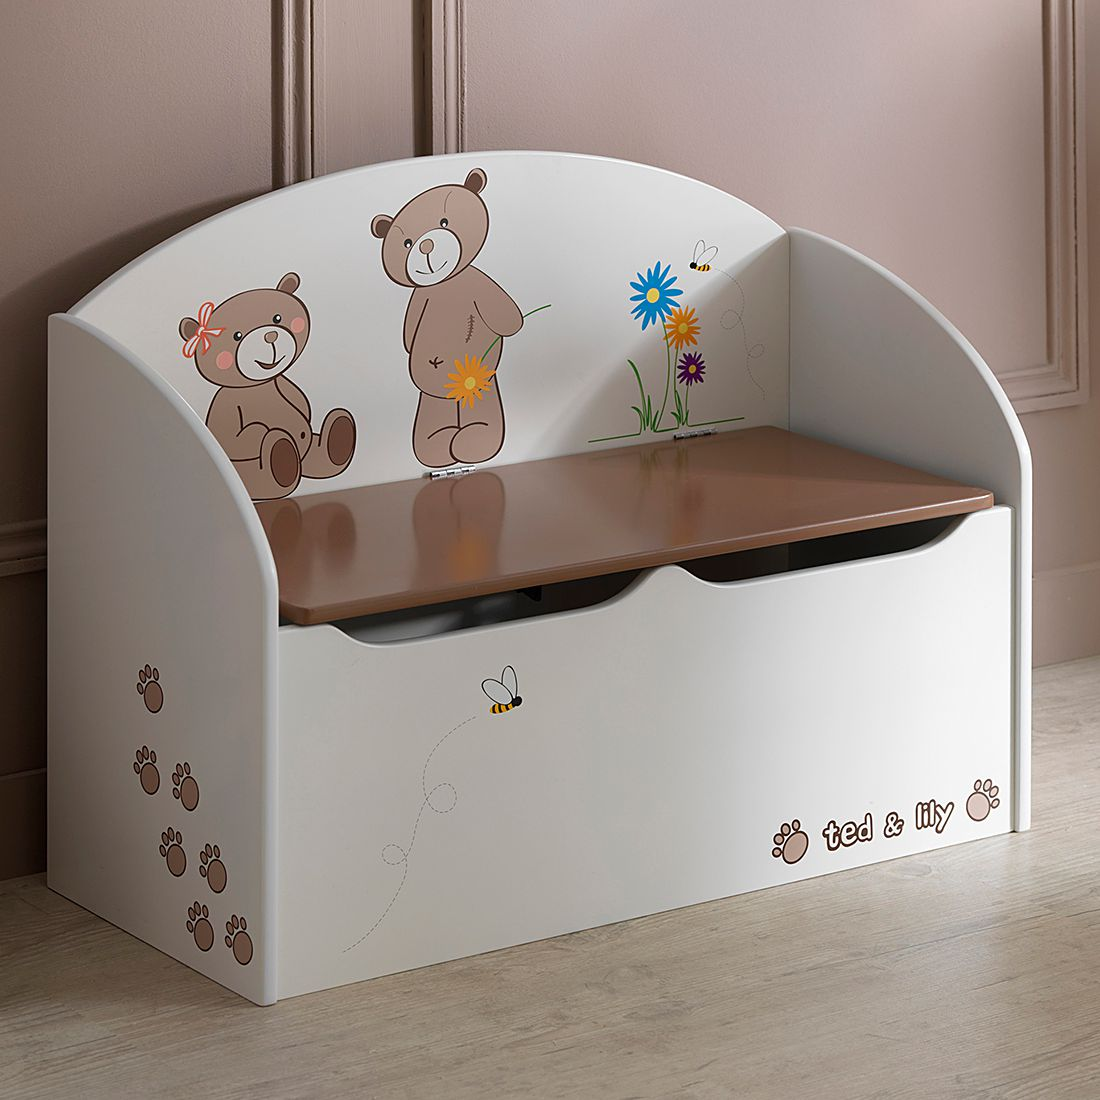 Speelgoedkist Ted - beige - chocoladekleurig, Kids Club Collection